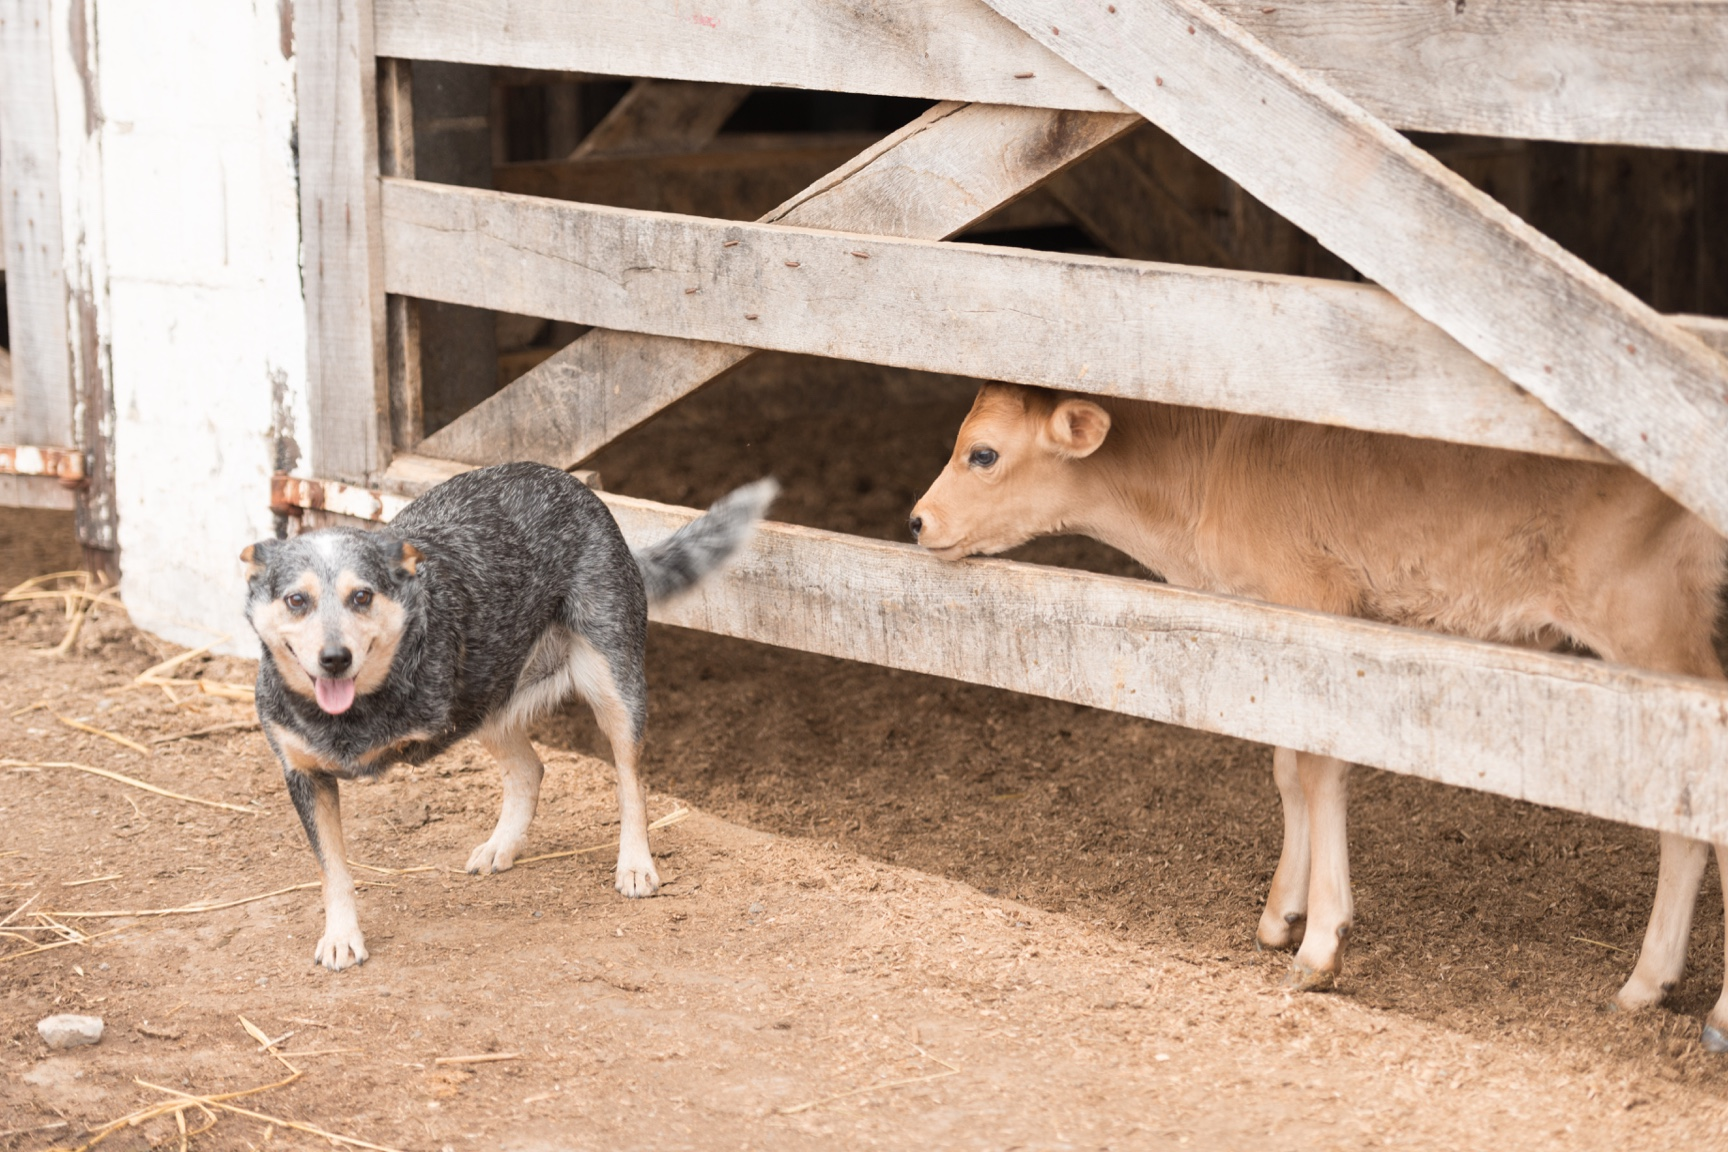 A three-legged dog stands next to a fence that a calf peeks through.